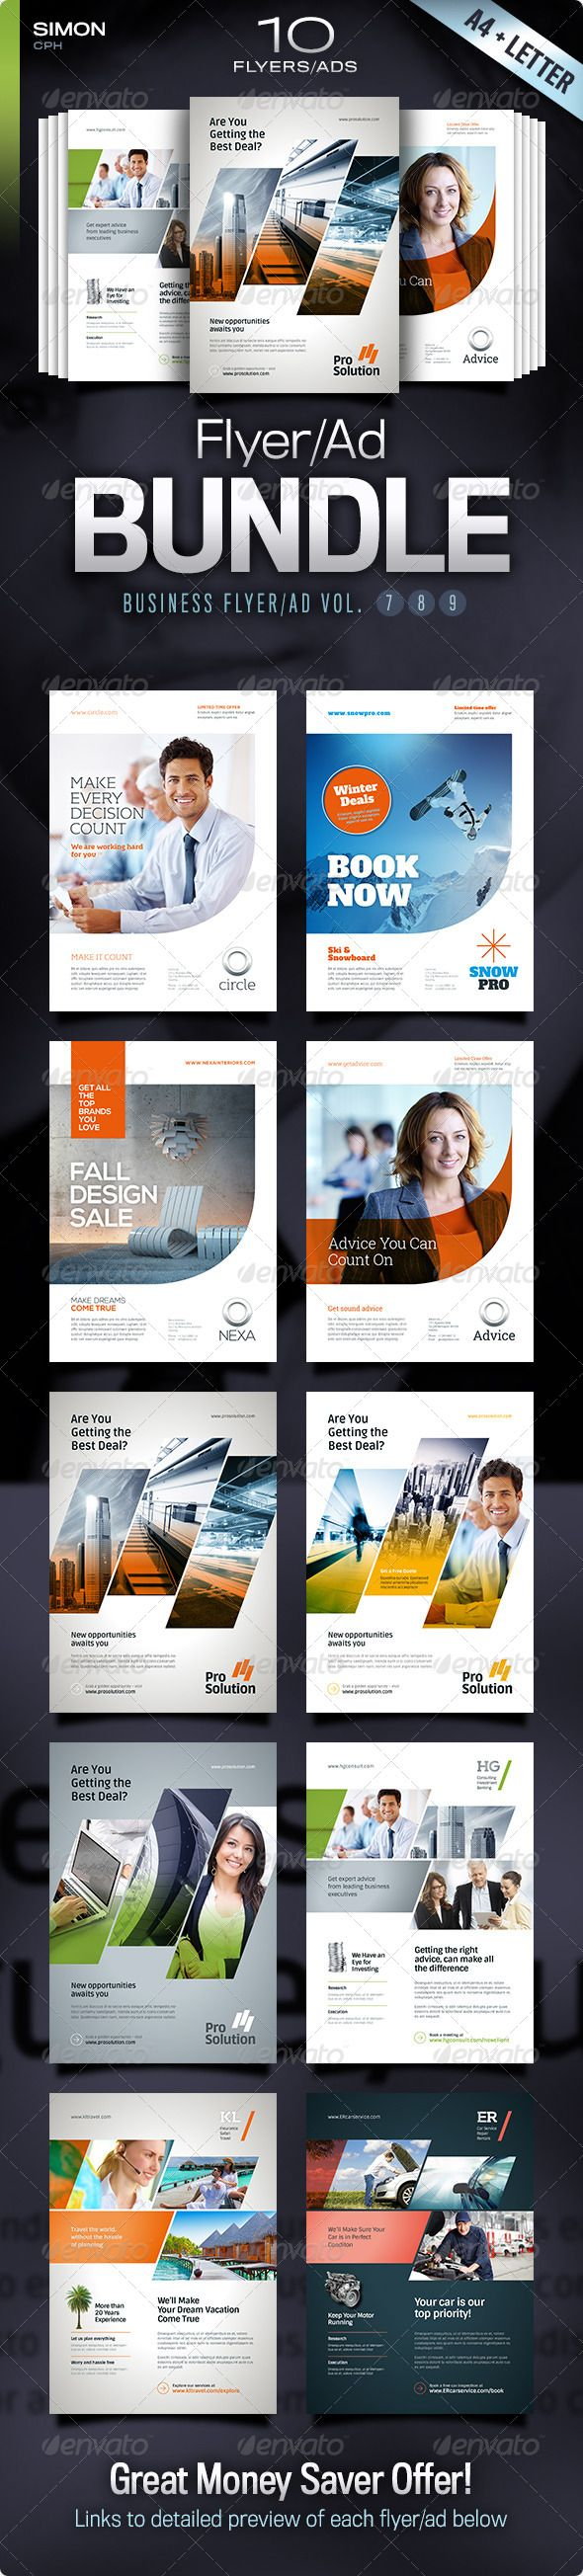 Business #Flyer / #Ad Bundle Vol. 7-8-9 - Corporate Flyers